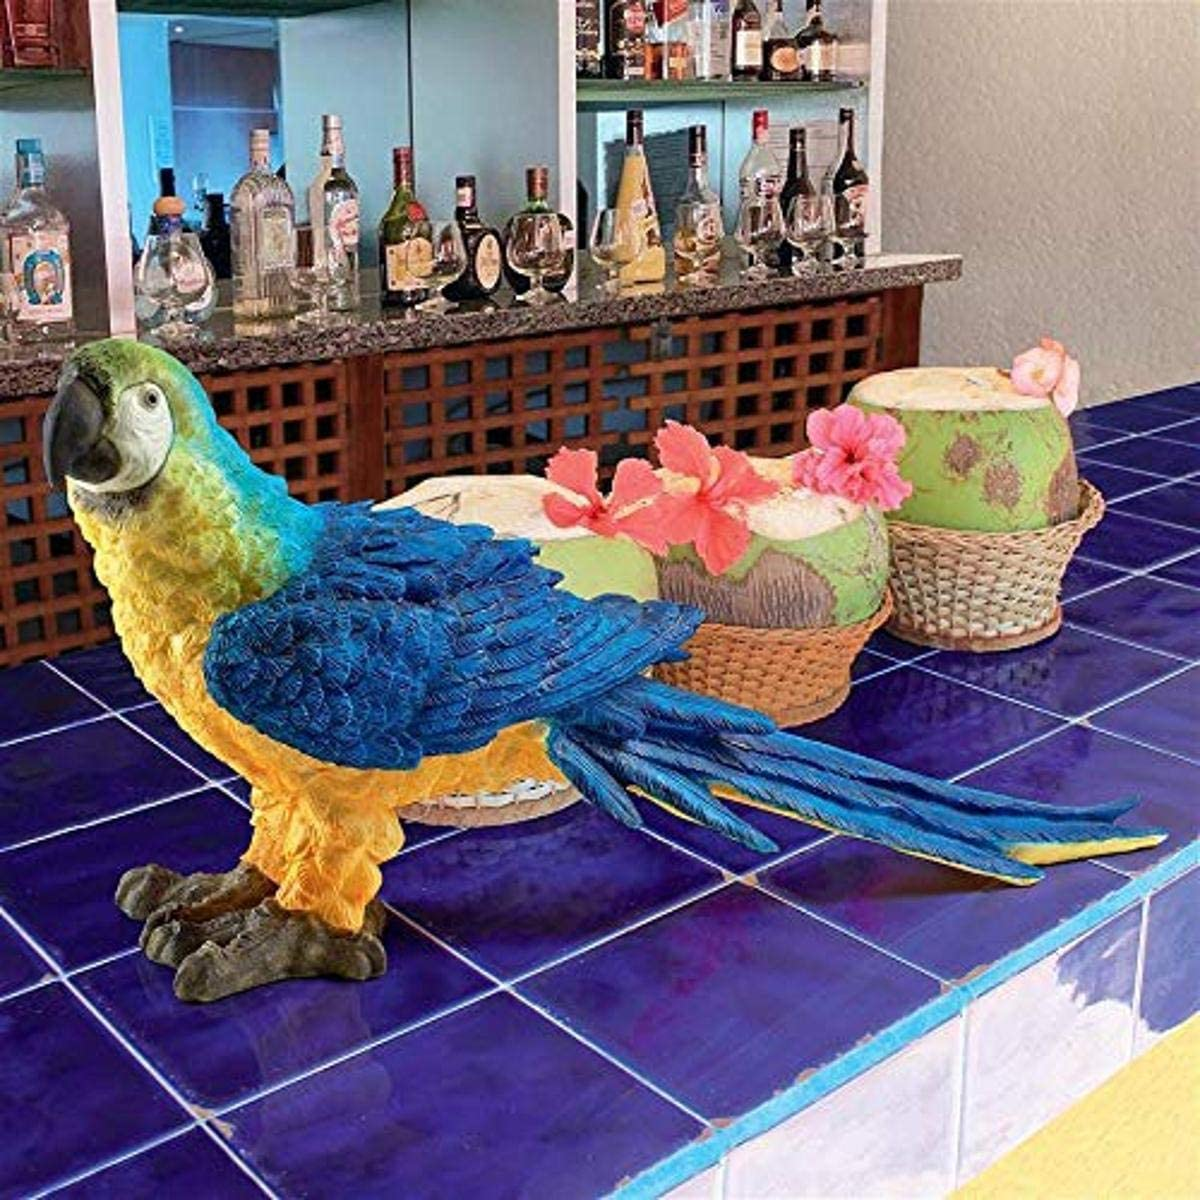 Design Toscano JQ5998 Mortimer The Macaw Tropical Parrot Statue, Full Color